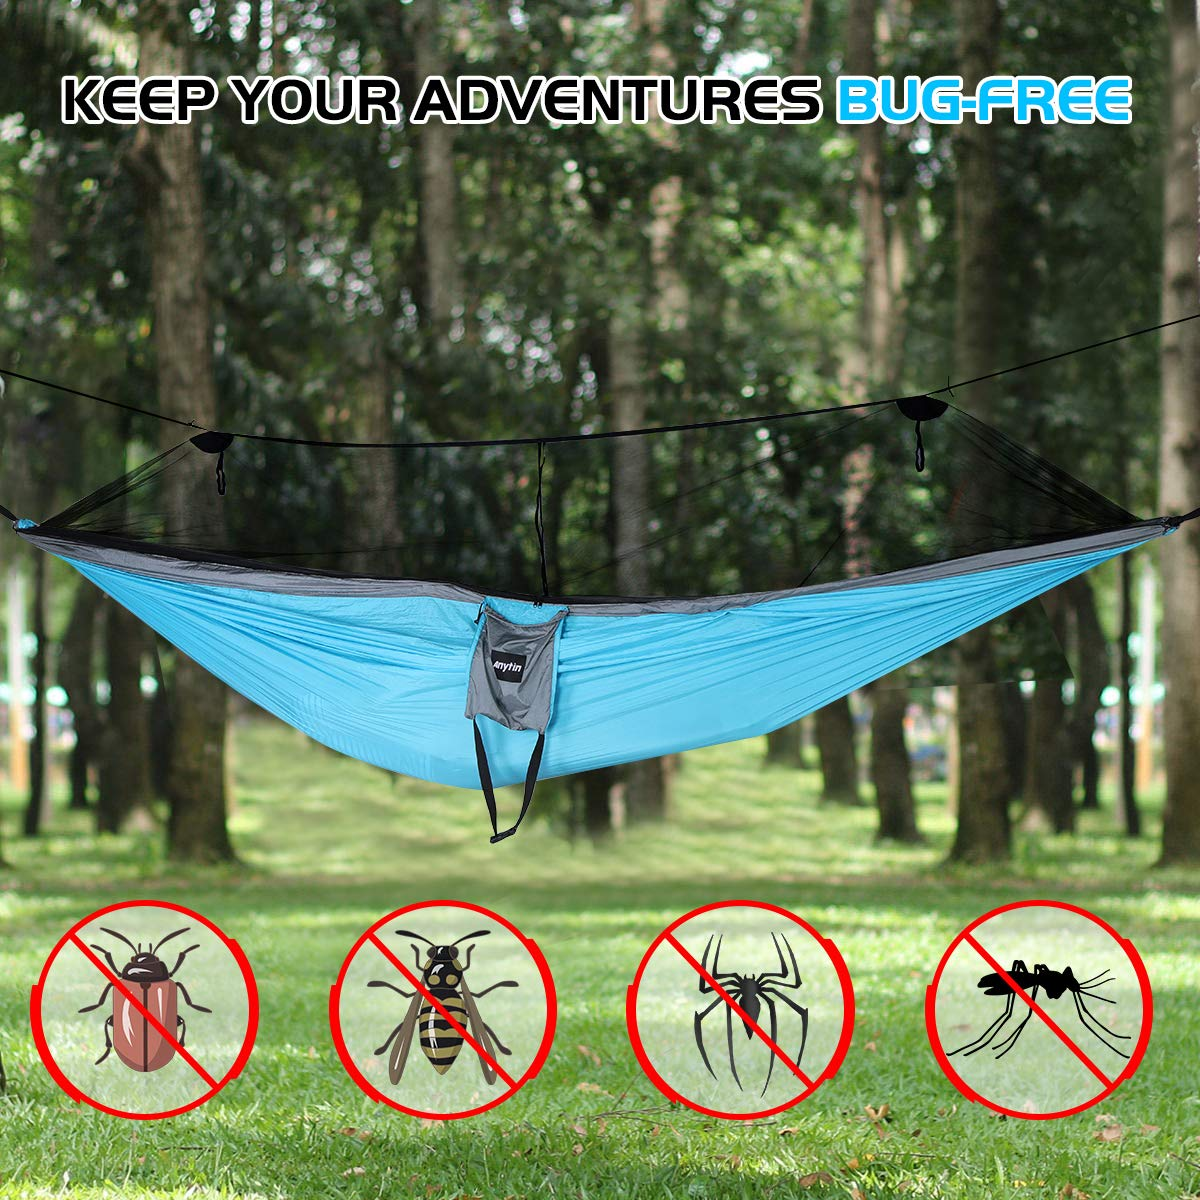 Extra Large Double Camping Hammock for Bug-Free Tent Portable Integrated Ripstop Nylon Hammock with Tree Straps Reversible Travel Backpacking Anytin Hammock with Mosquito Net